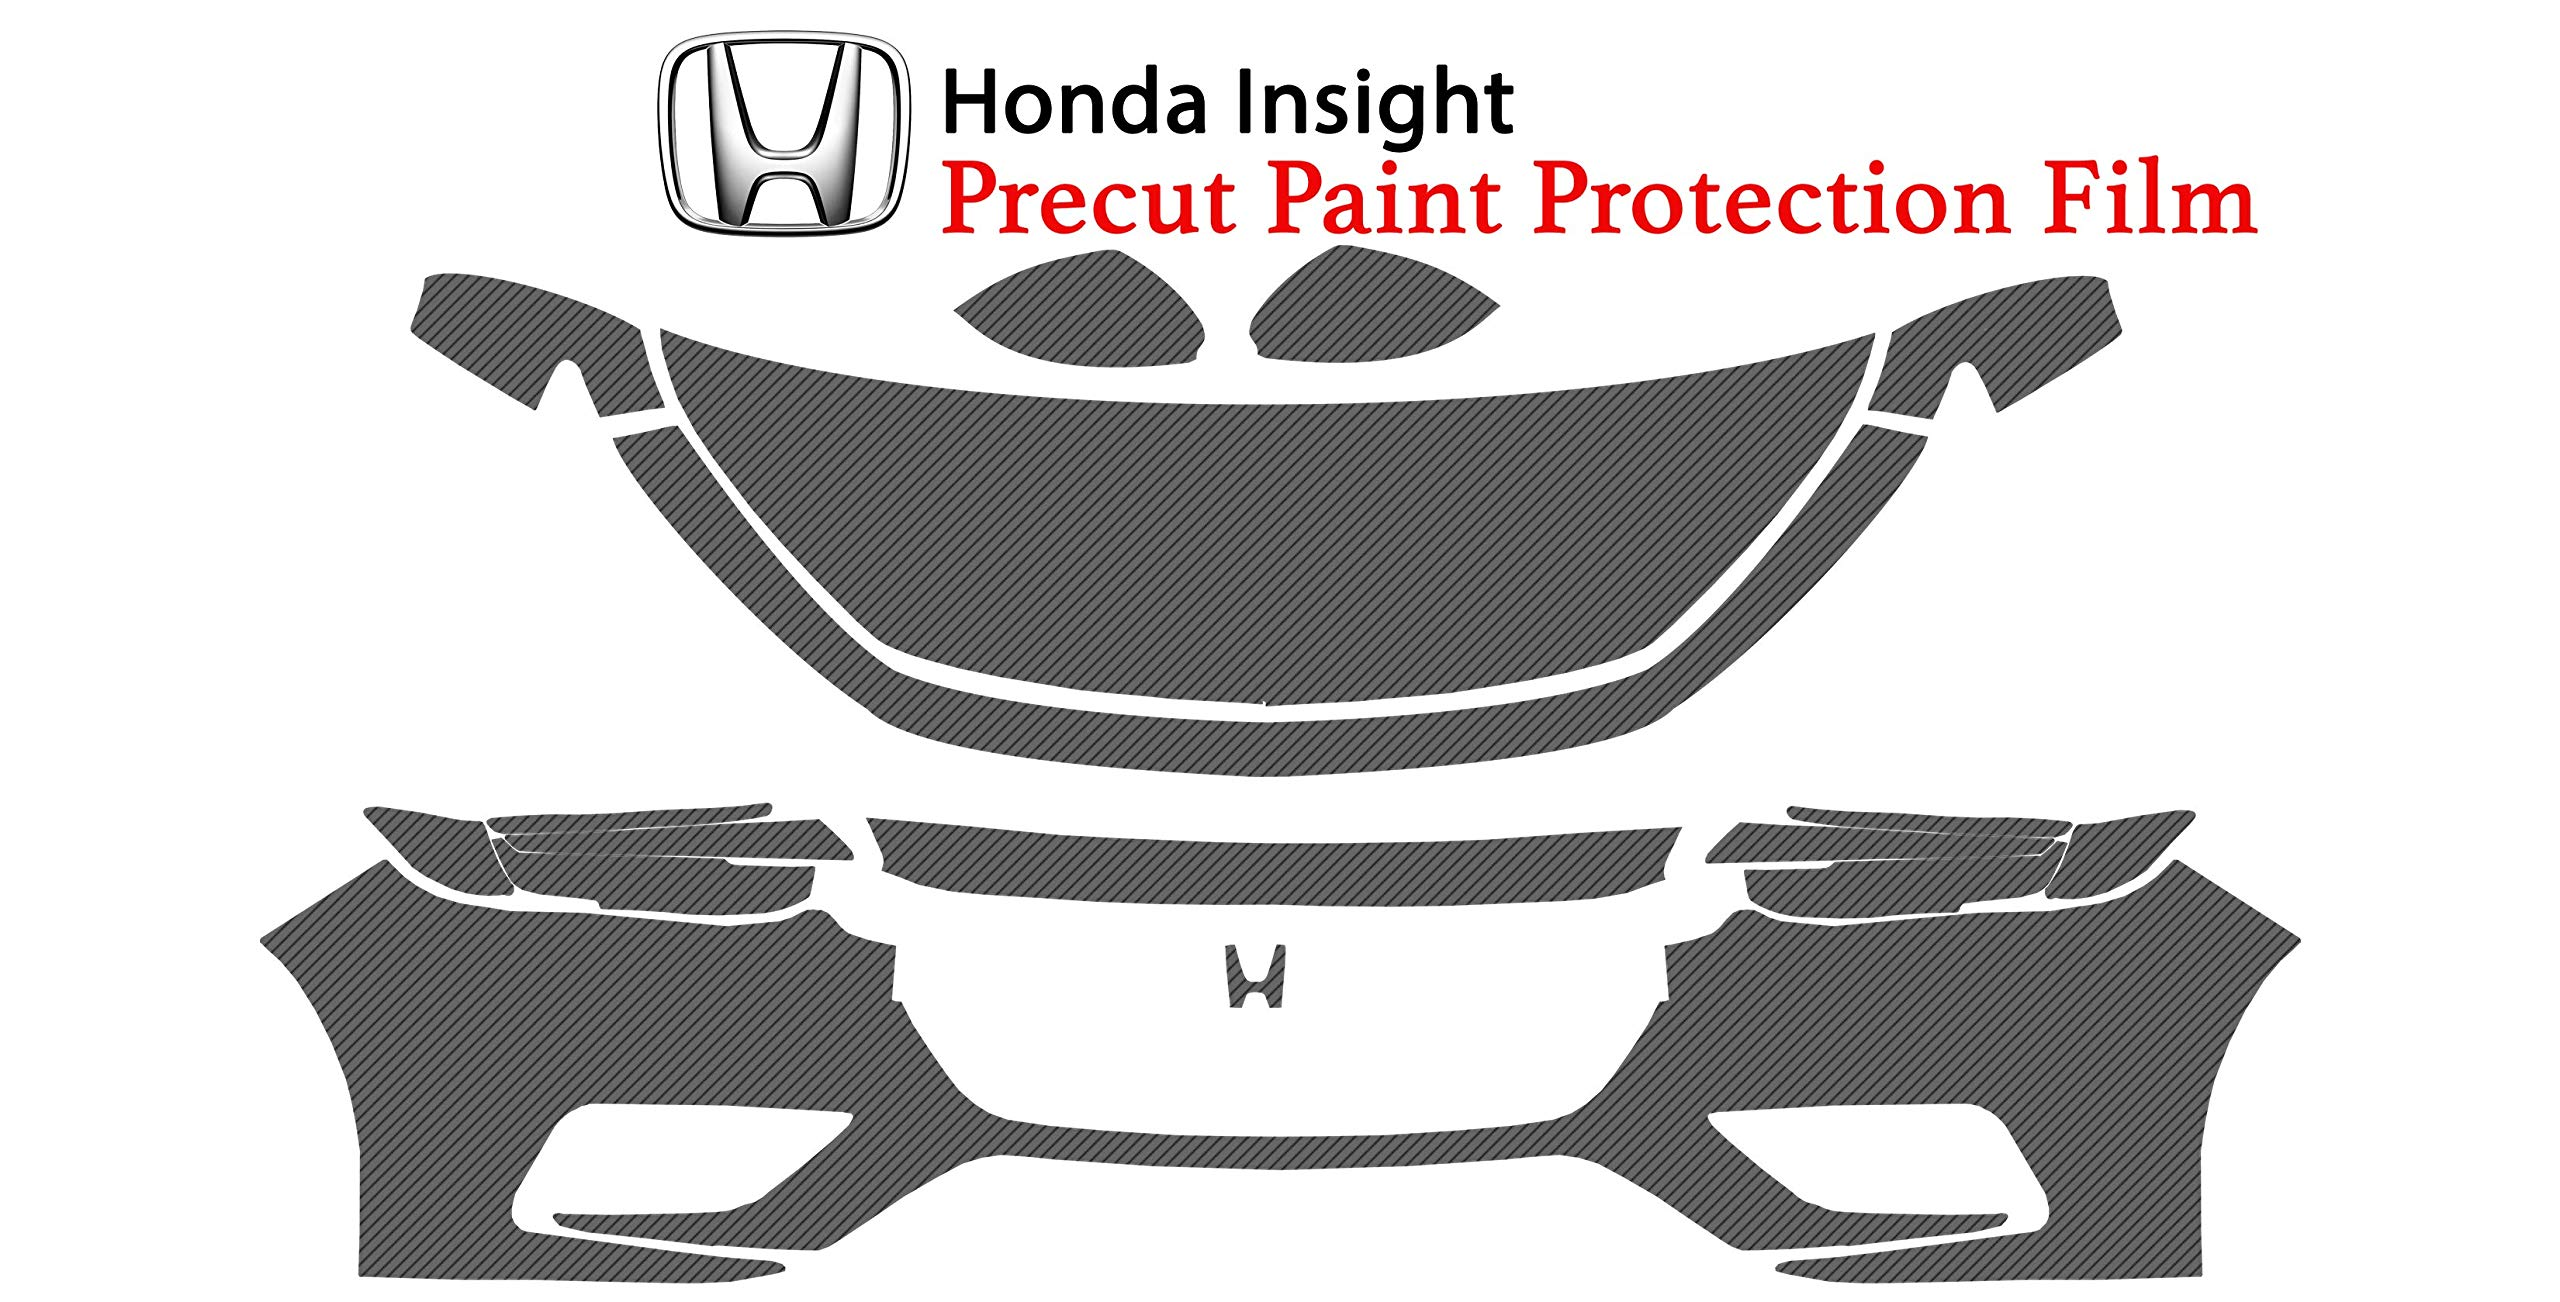 The Online Liquidator Full Front Protective Film fits Honda Insight 2019 - Clear Bra Professional Car Paint Shield Cover